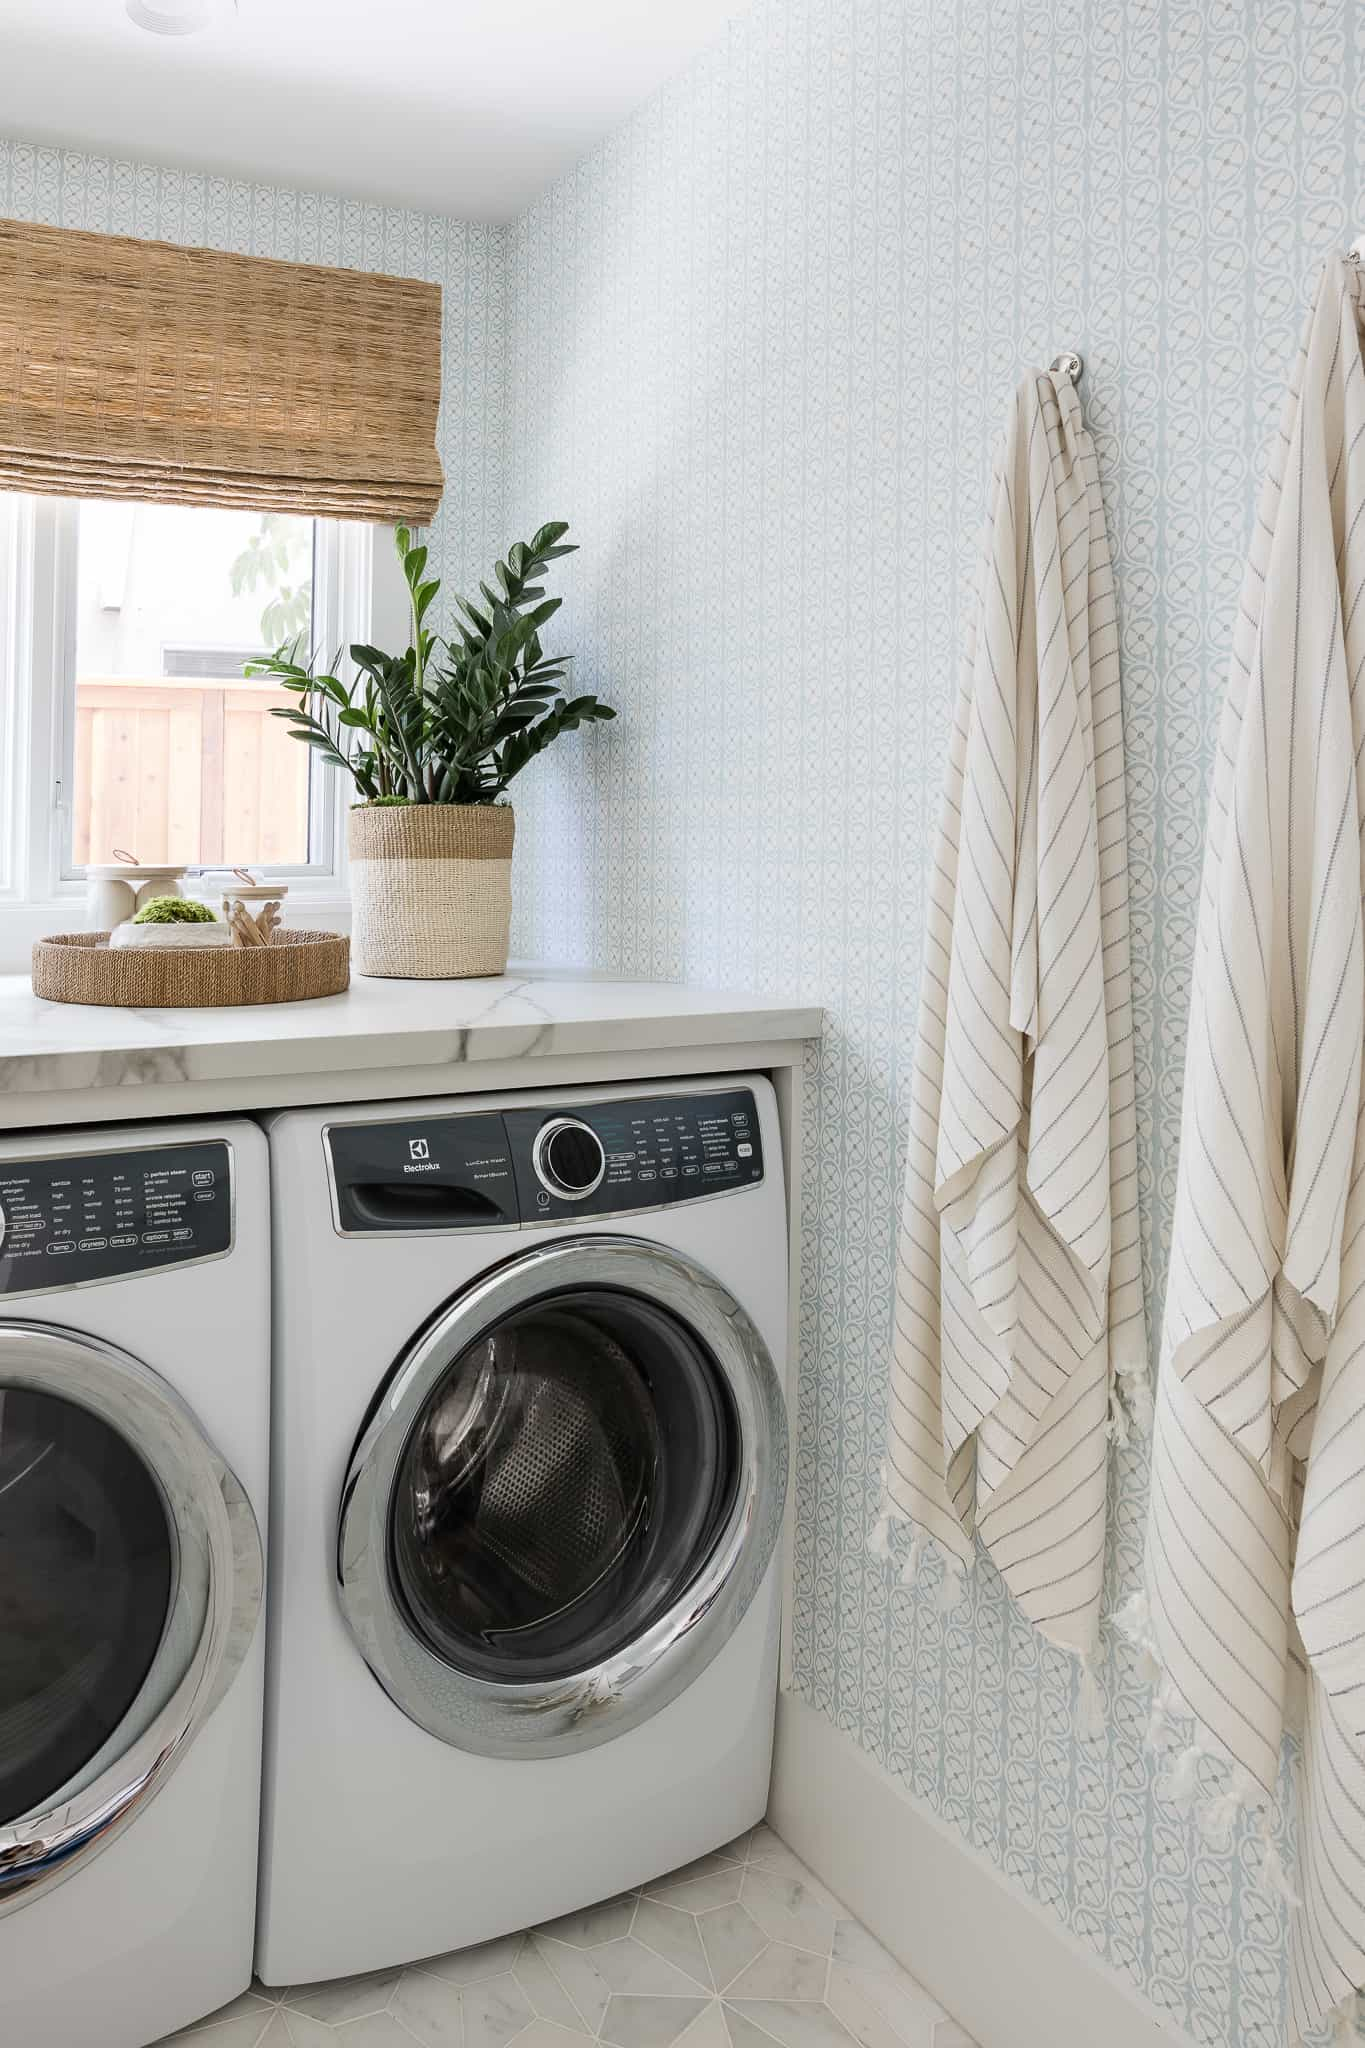 Port Newport Project - Mindy Gayer Design Co. - Coastal Family Home Laundry Room